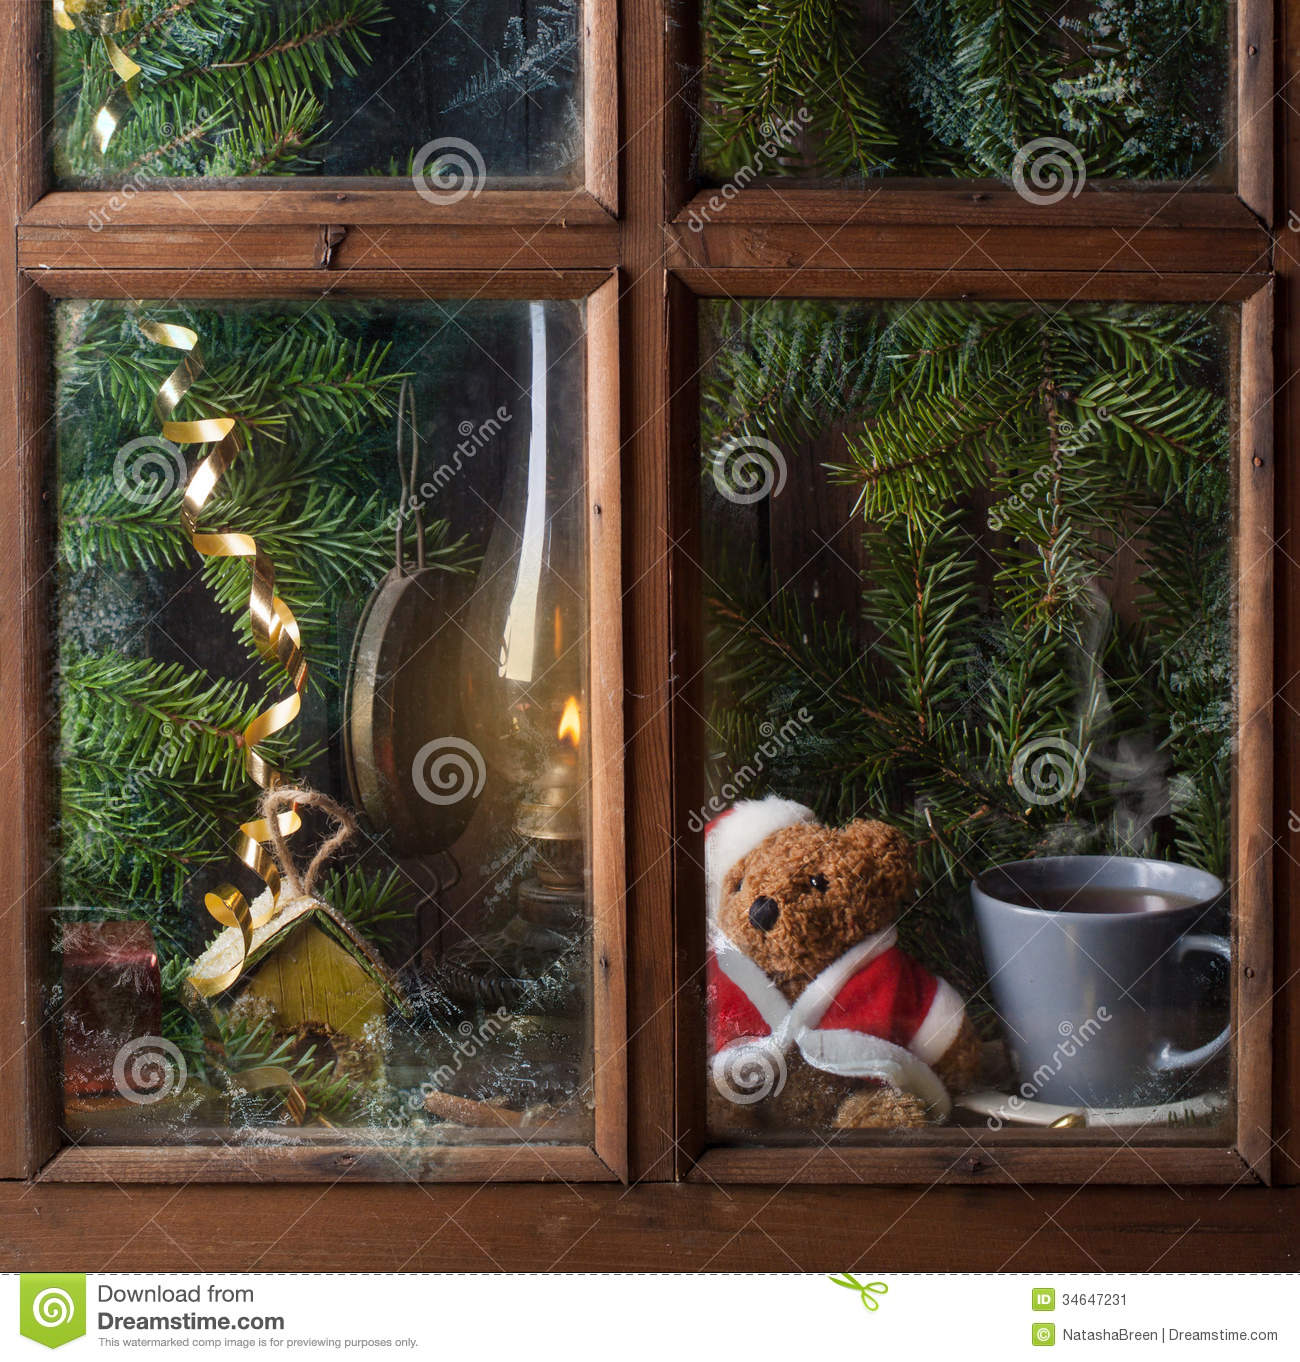 christmas decoration with teddy bear in window stock image image 34647231. Black Bedroom Furniture Sets. Home Design Ideas